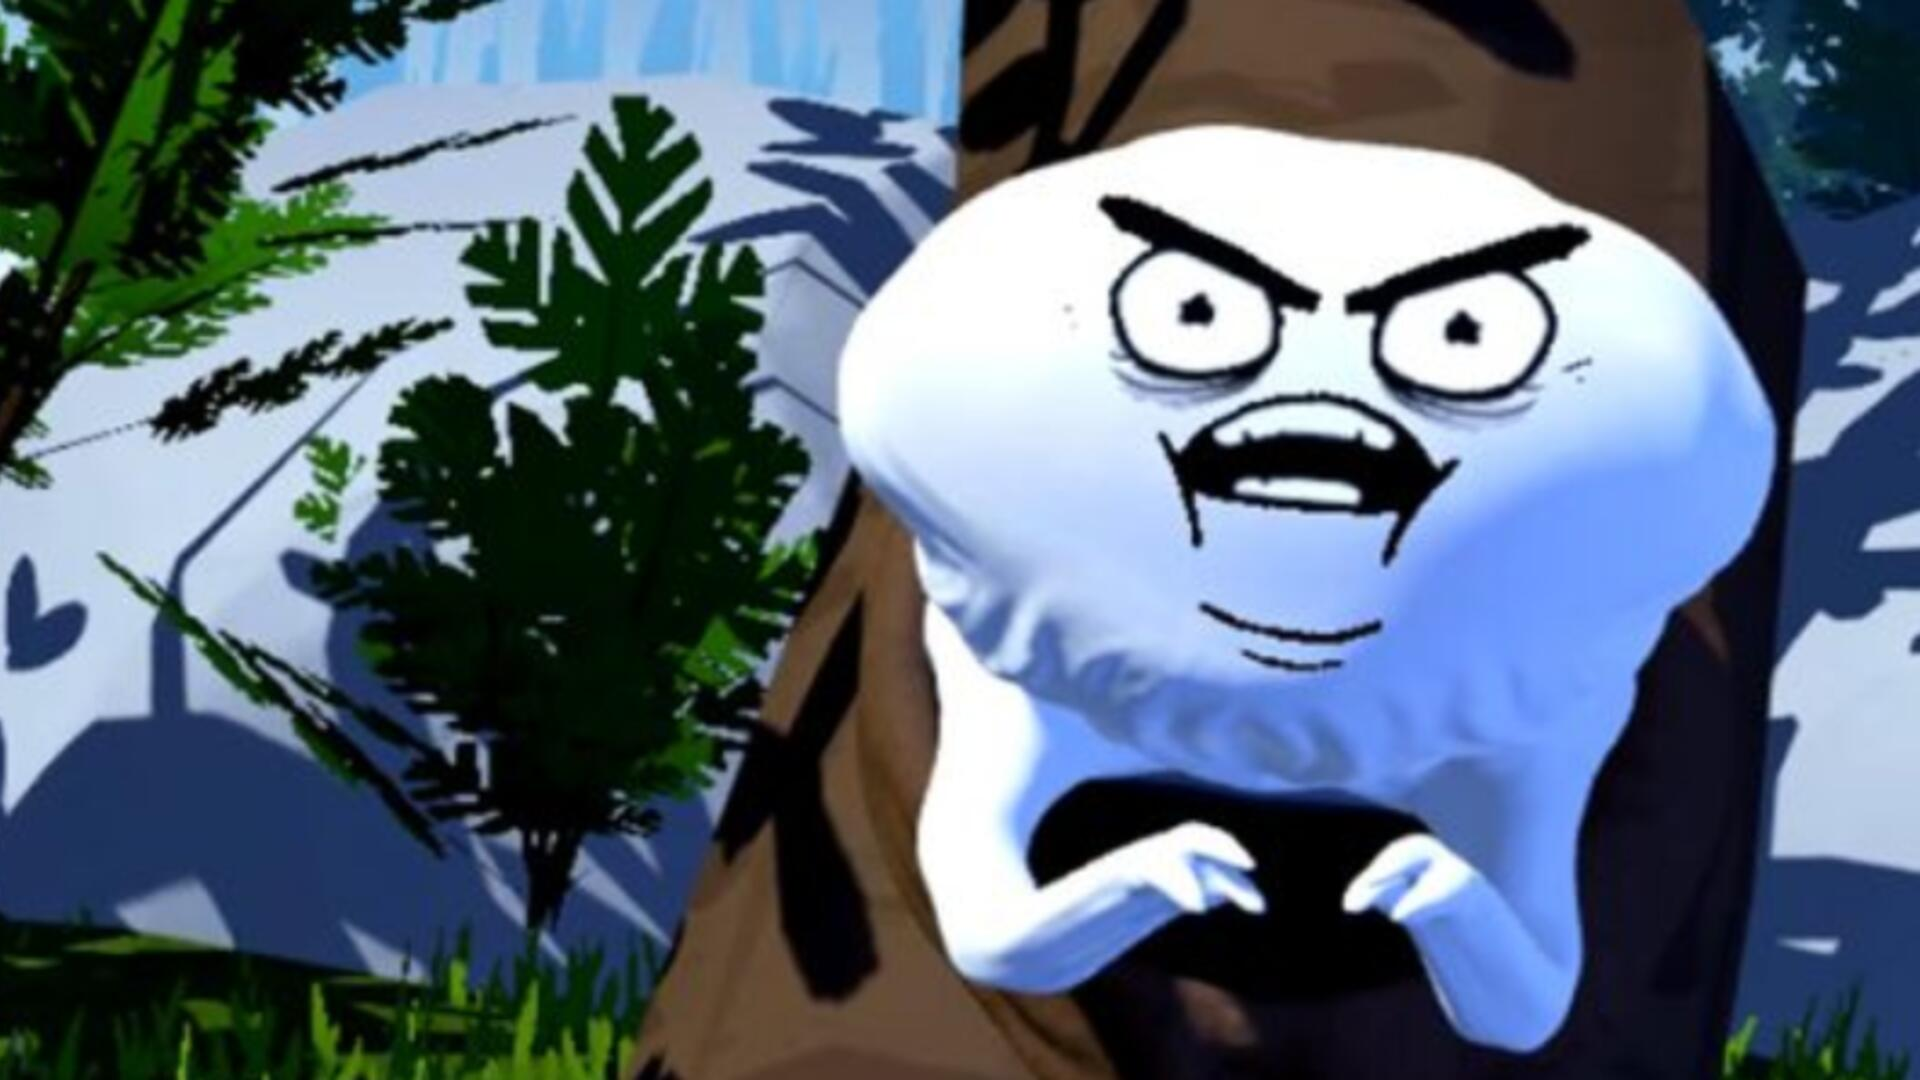 Rick & Morty Co-Creator Justin Roiland Wants to Make Traditional Console Games, Too